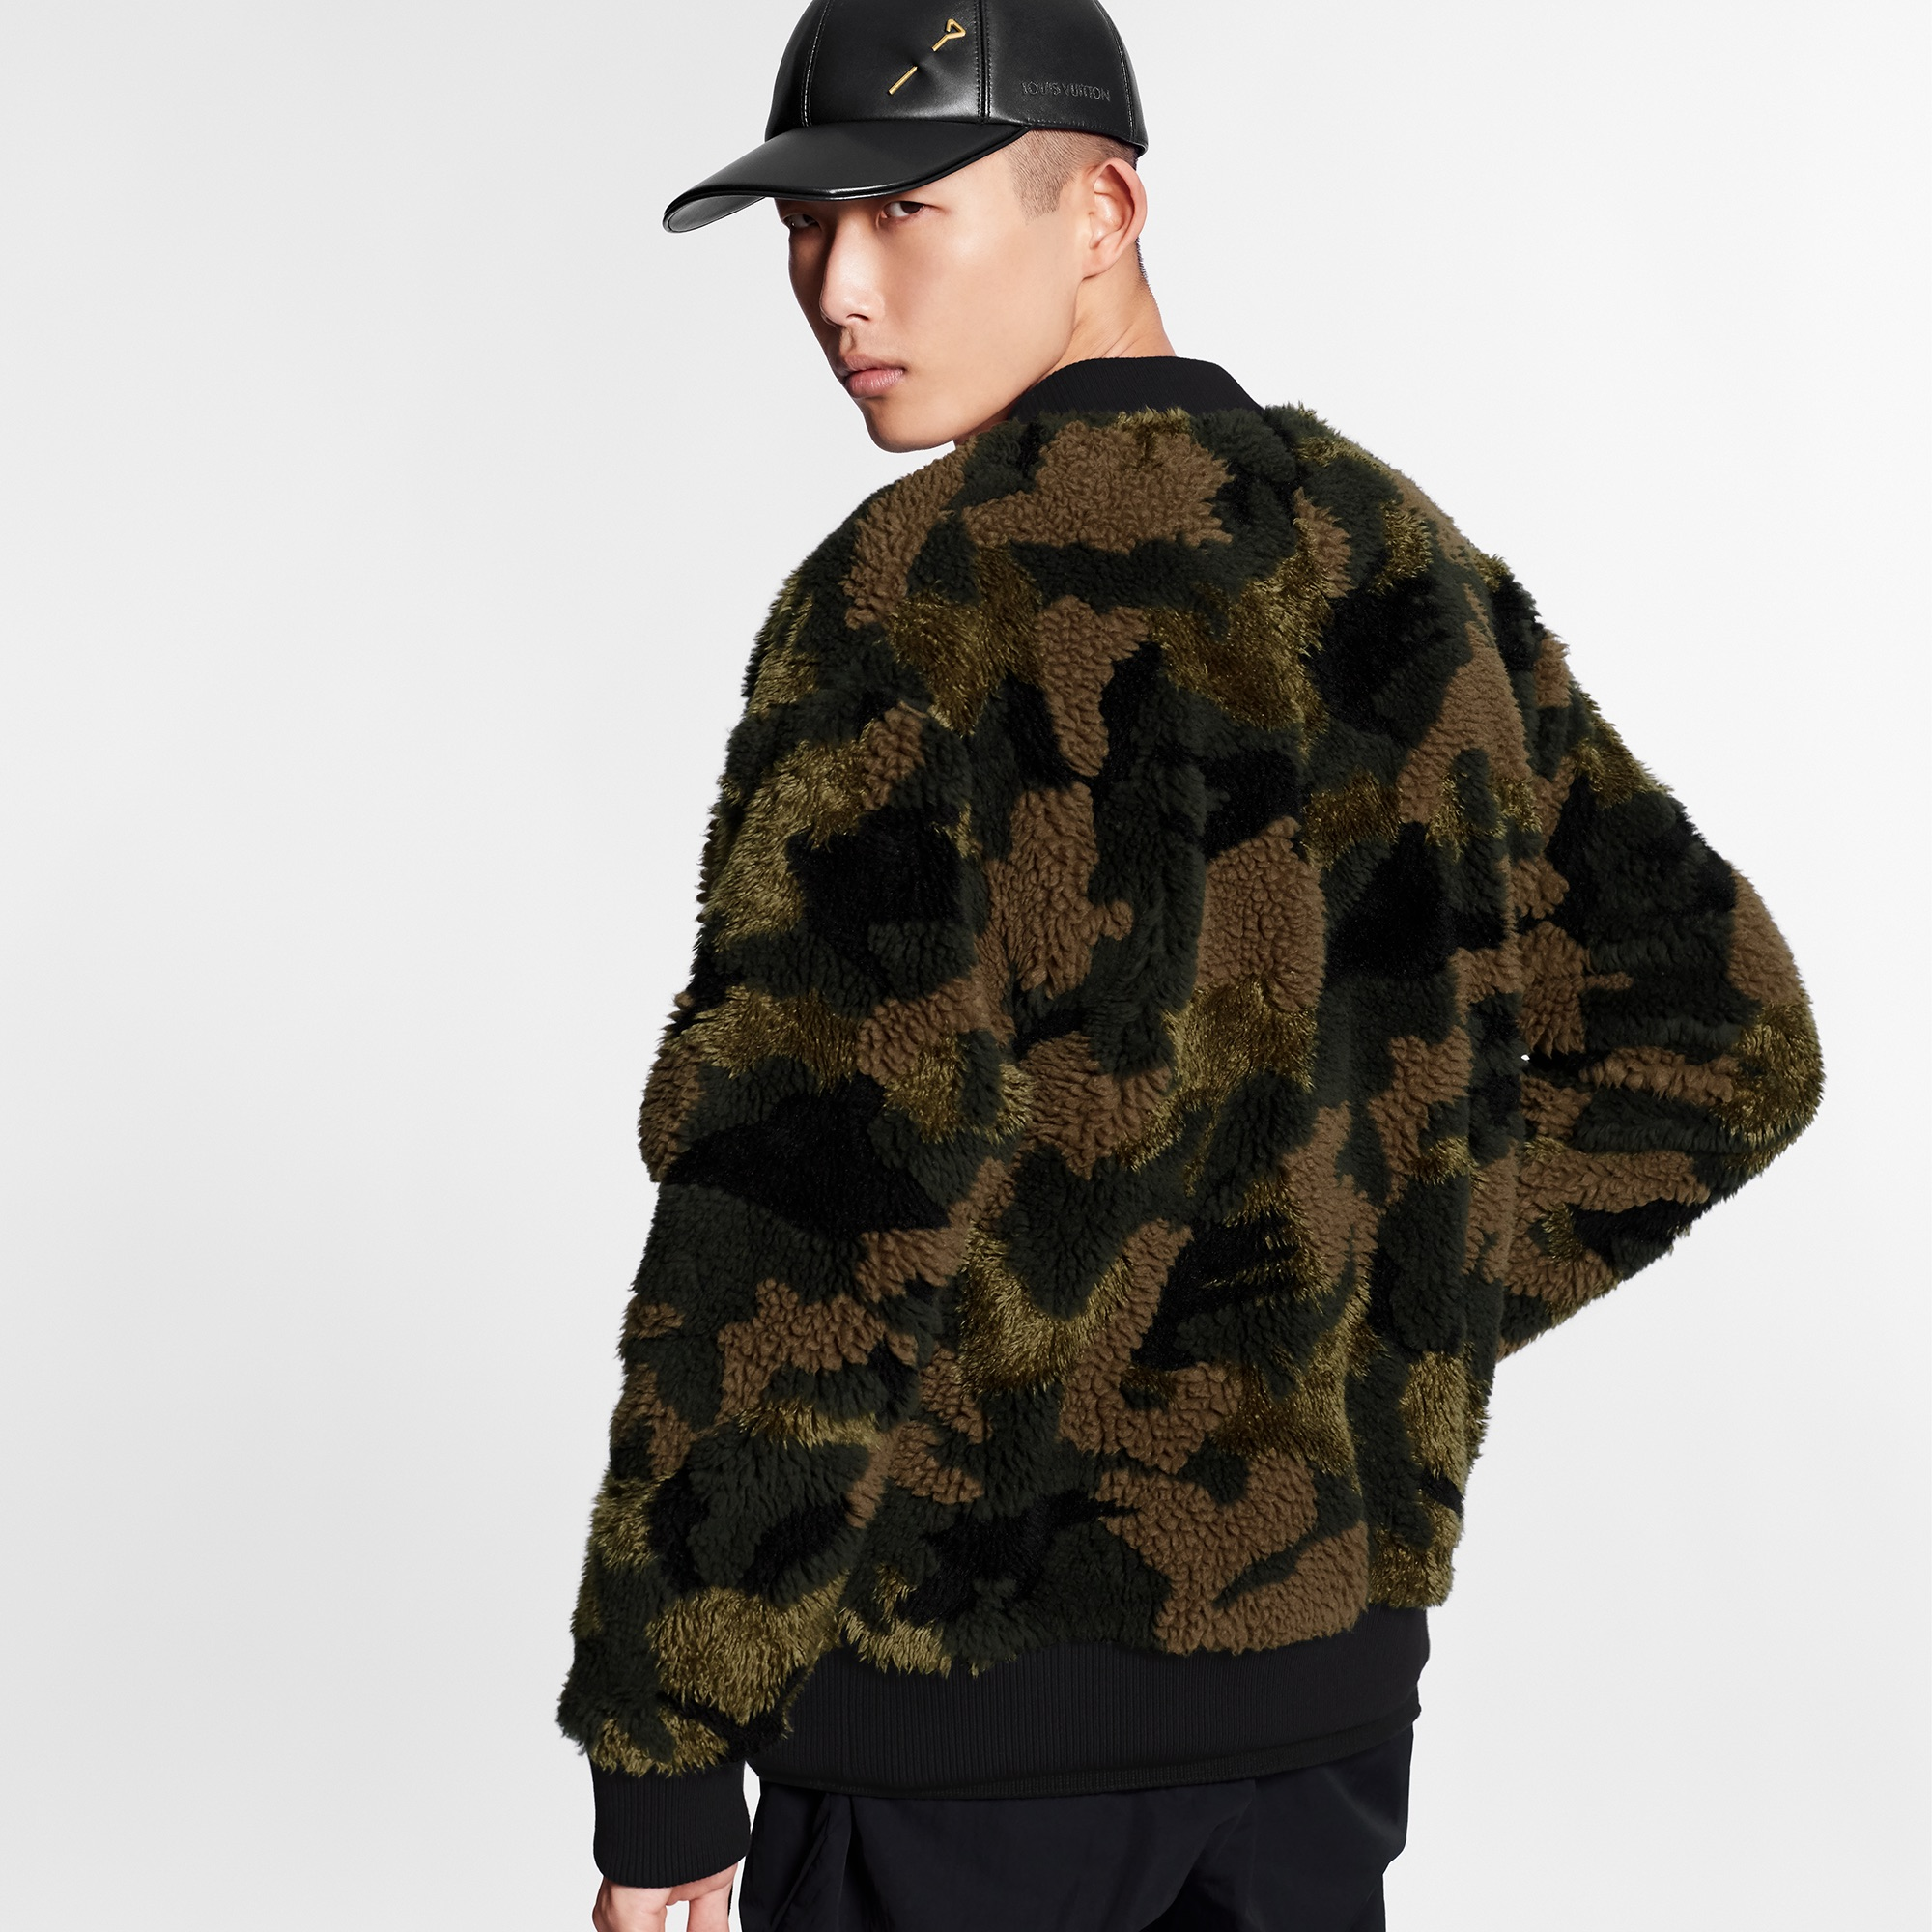 Camo print Louis Vuitton jacket